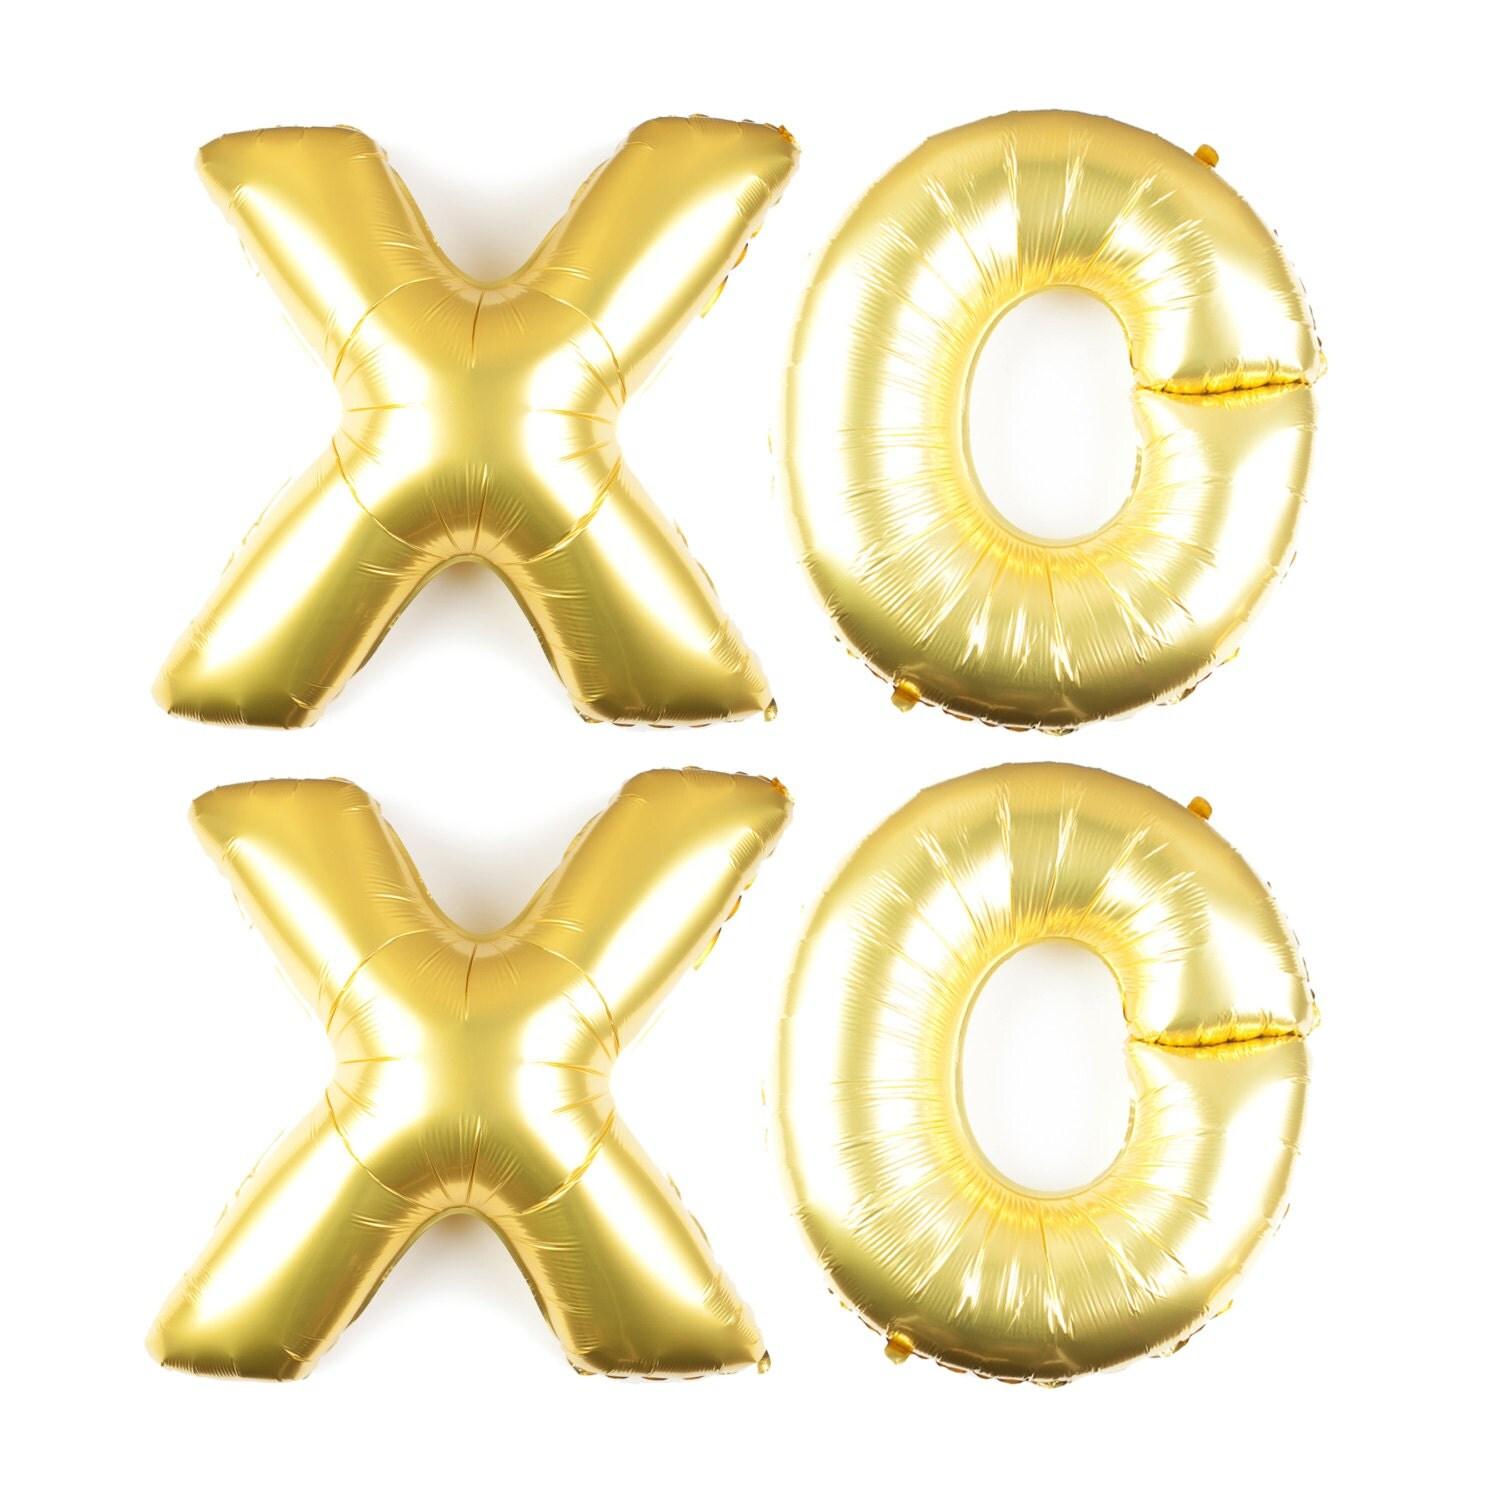 big balloon letters xoxo balloons large gold letters 40 inch wedding 20604 | il fullxfull.924604845 7ash